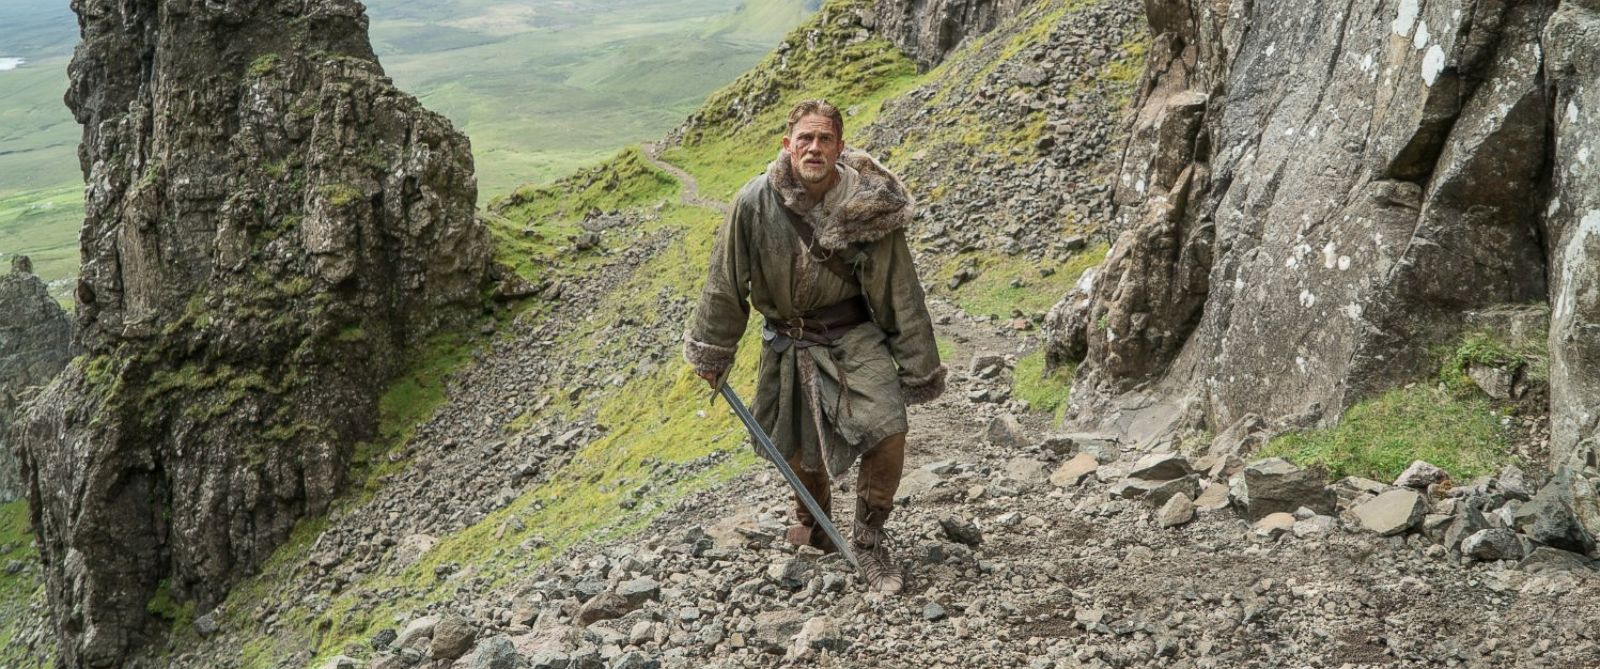 In A Scene From The Movie King Arthur Legend Of The Sword 2017